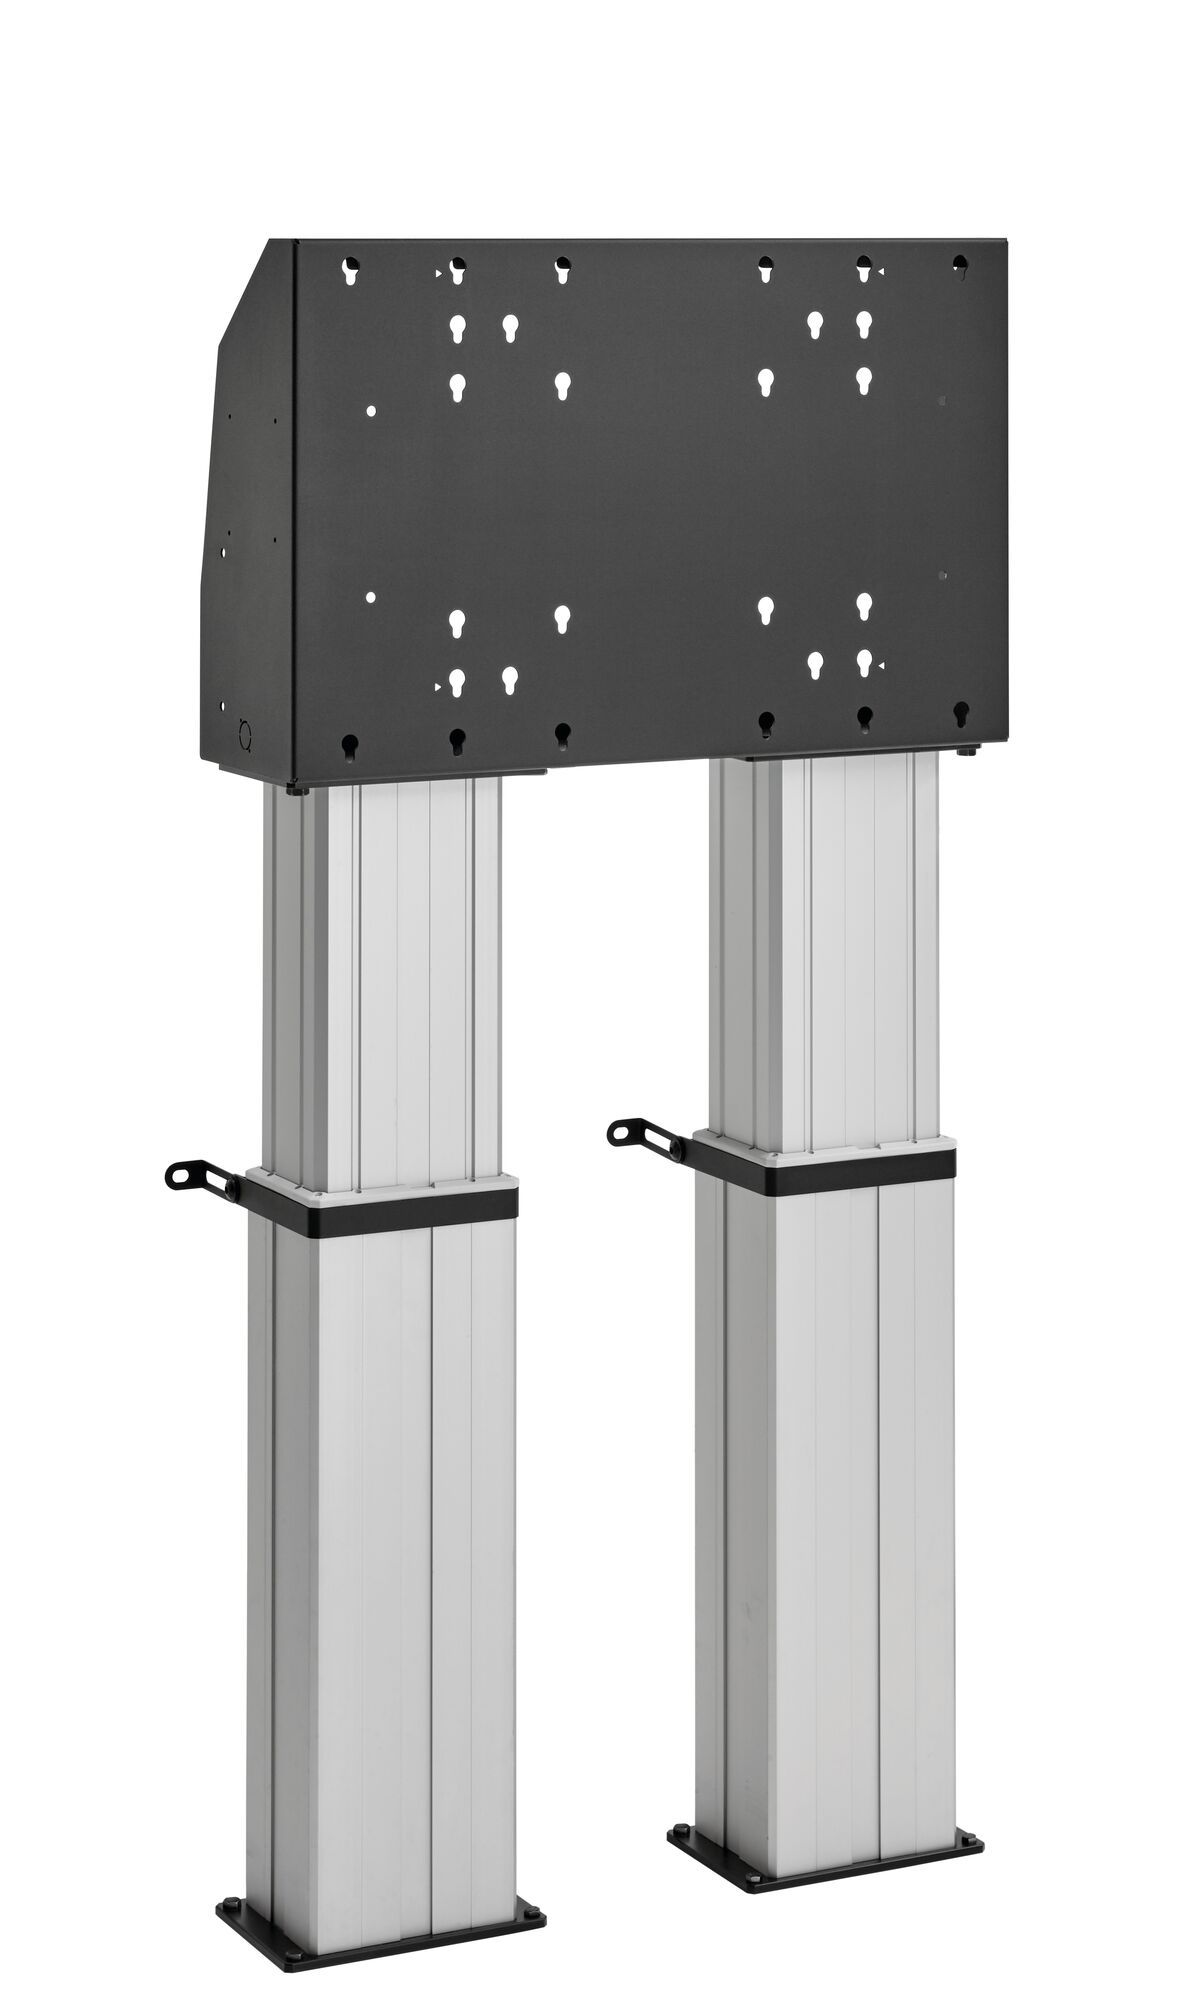 Vogel's FMDE5064 Motorized floor stand